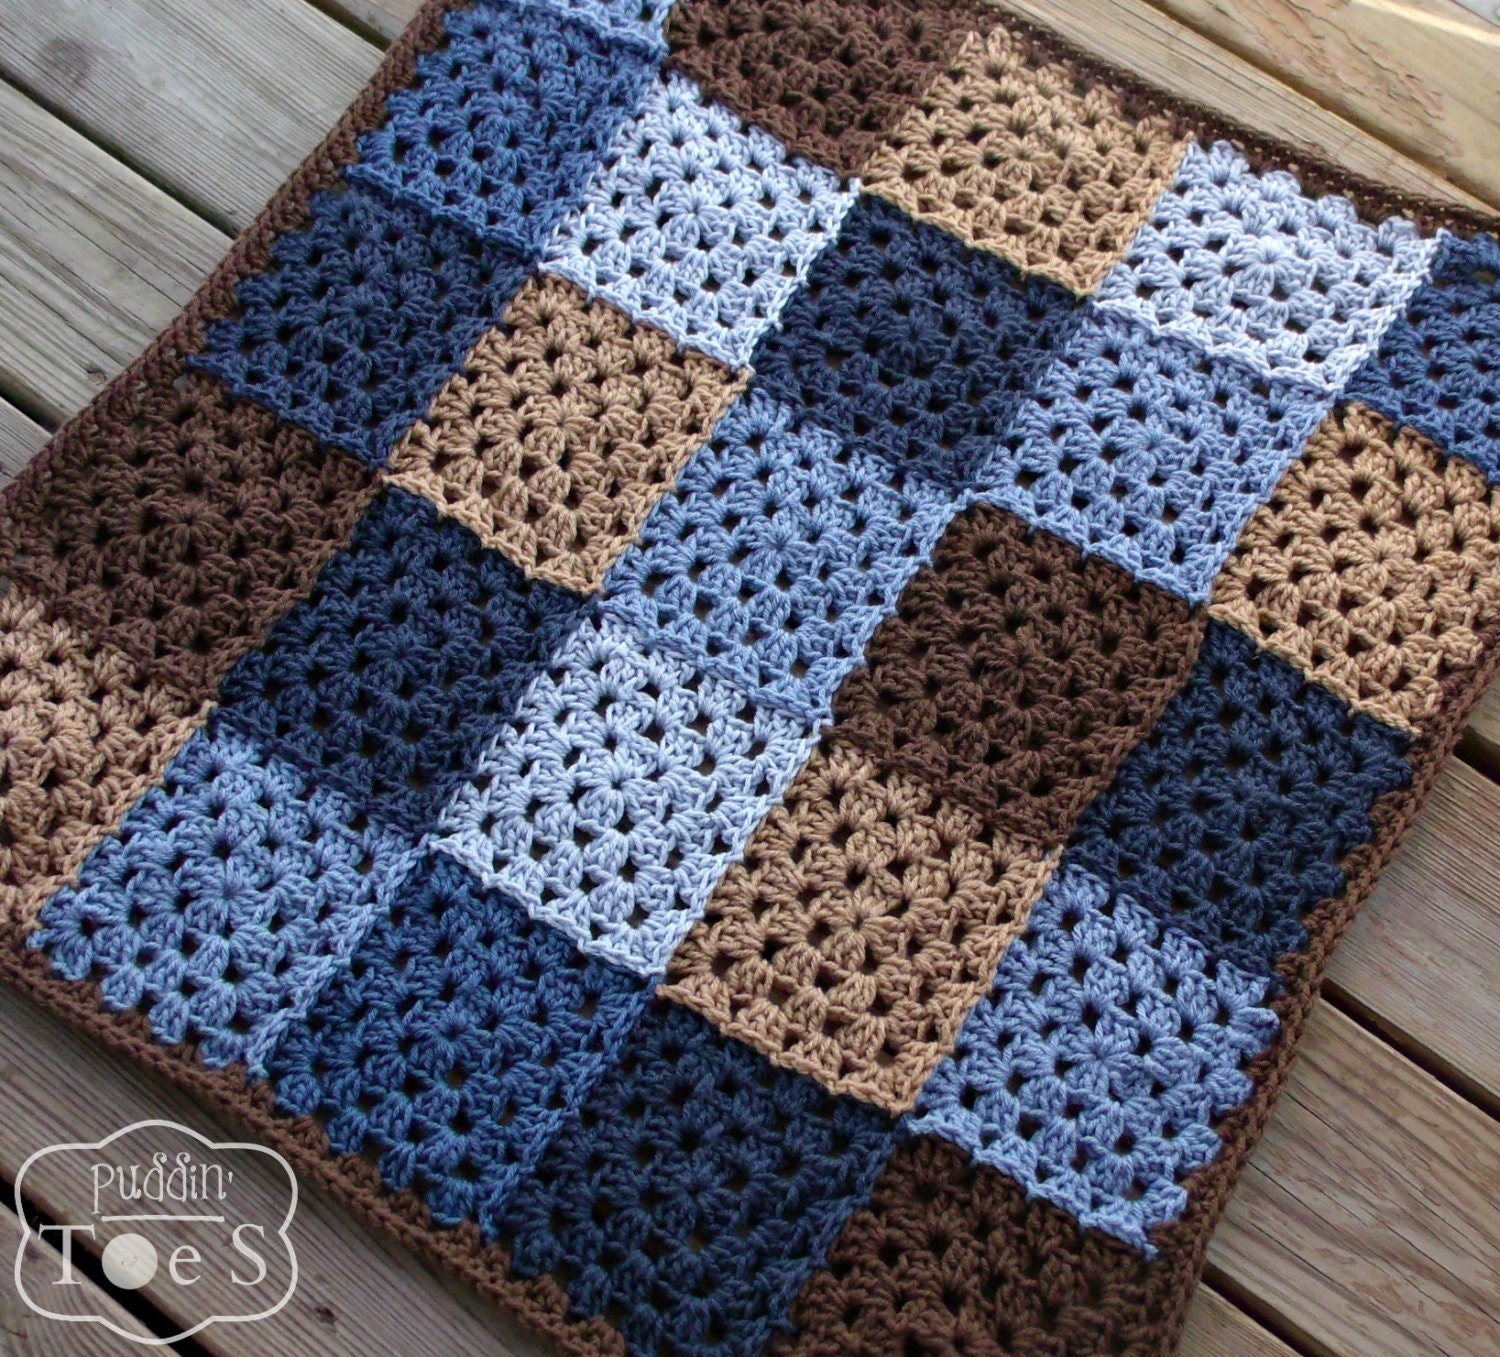 Crochet Patterns For Baby Blankets Squares : Crochet Baby Blanket Blue and Brown Granny Square by ...